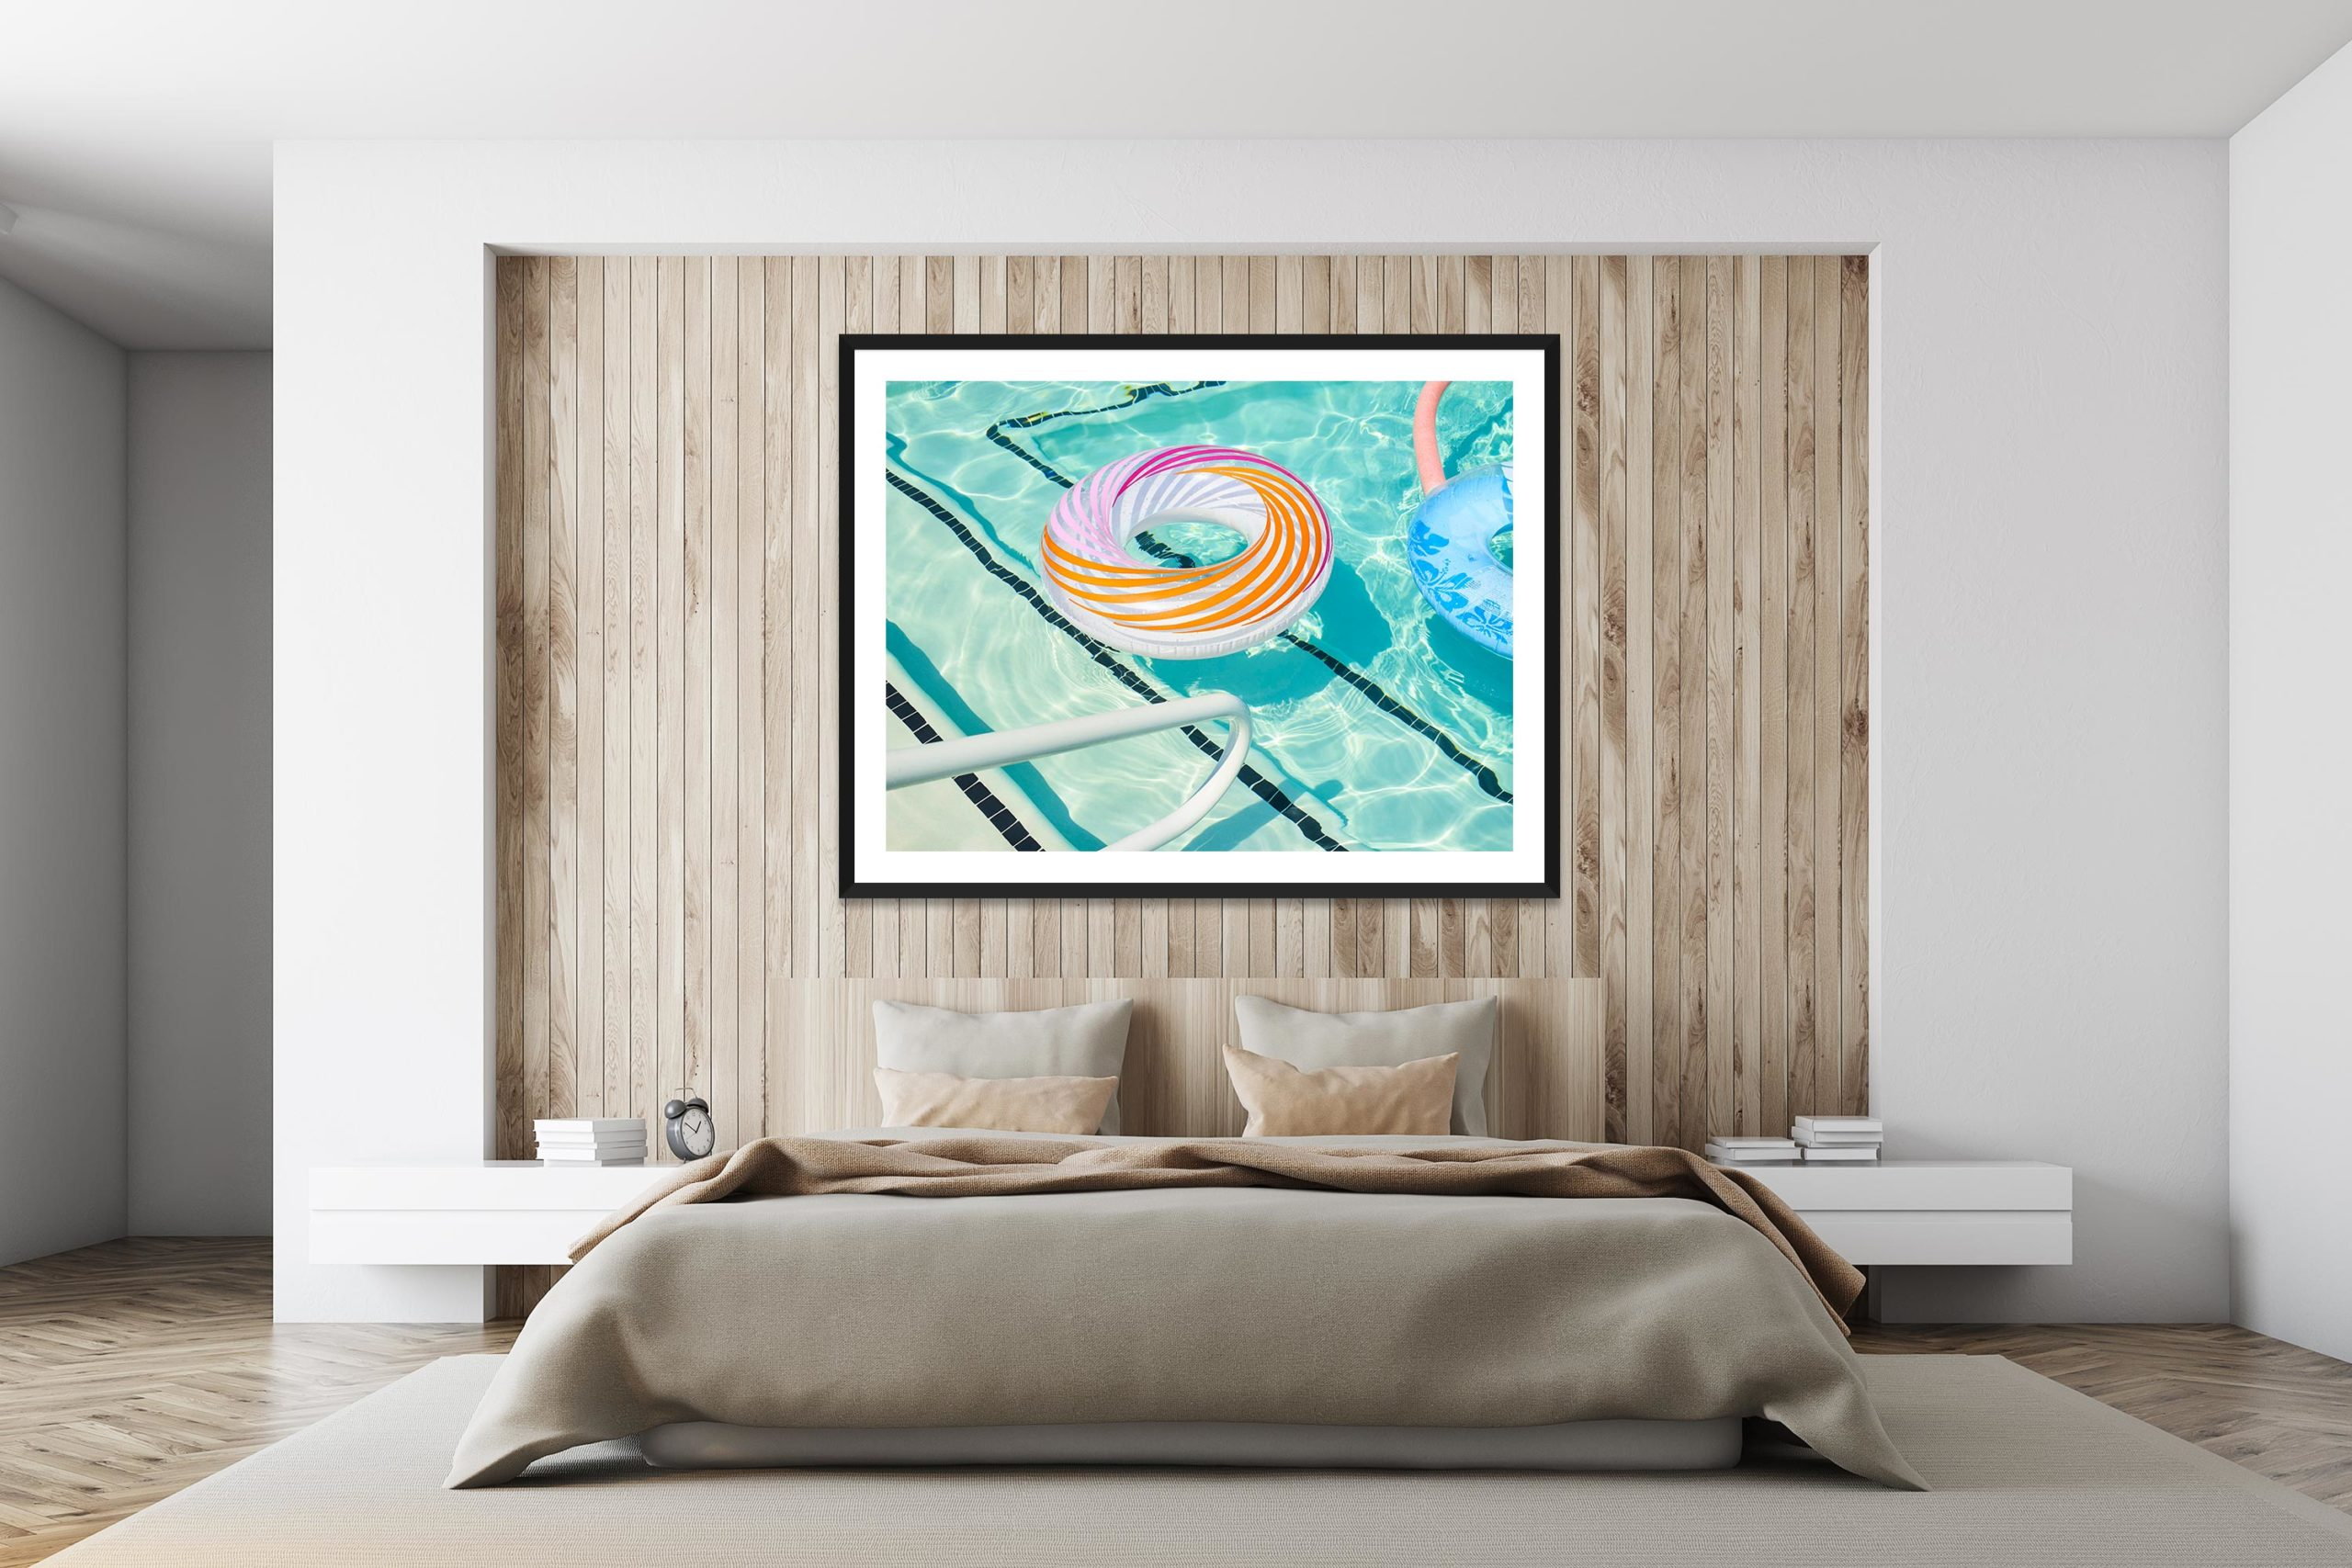 Rings - Black Frame - I Heart Palm Springs Collection - Fine Art Photography by Toby Dixon